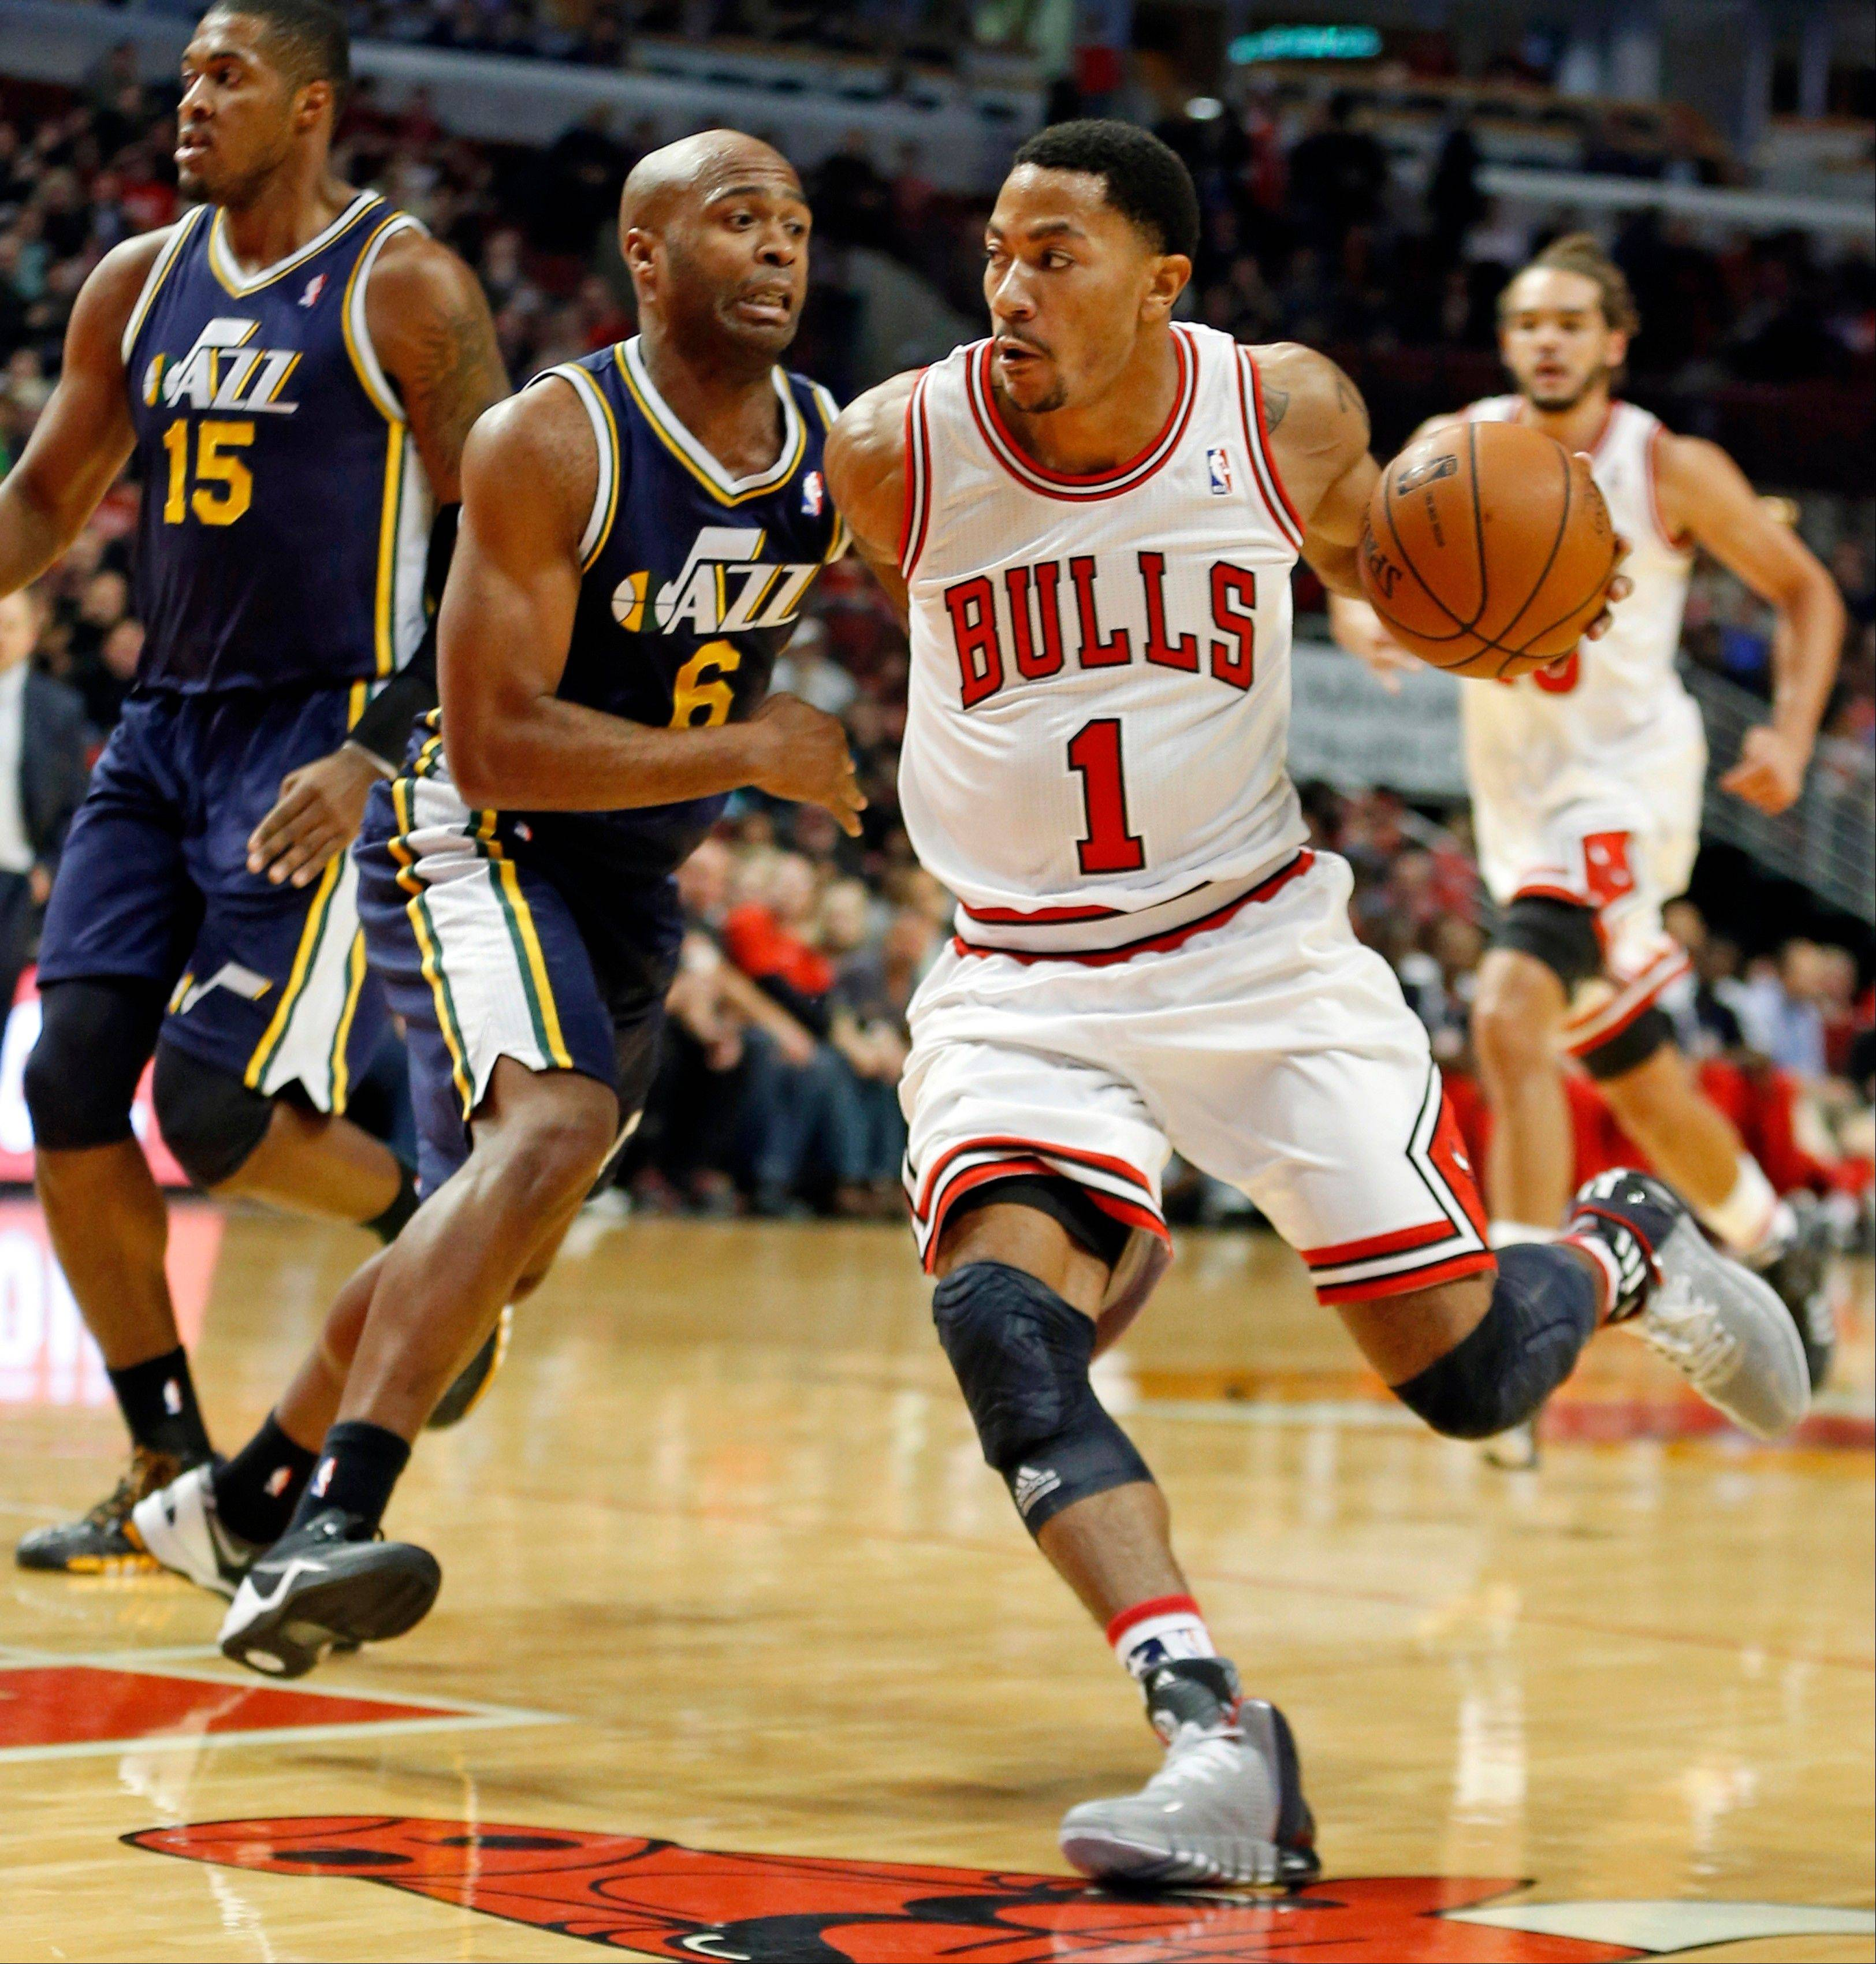 The Bulls� Derrick Rose leads the NBA with 5 turnovers per game.